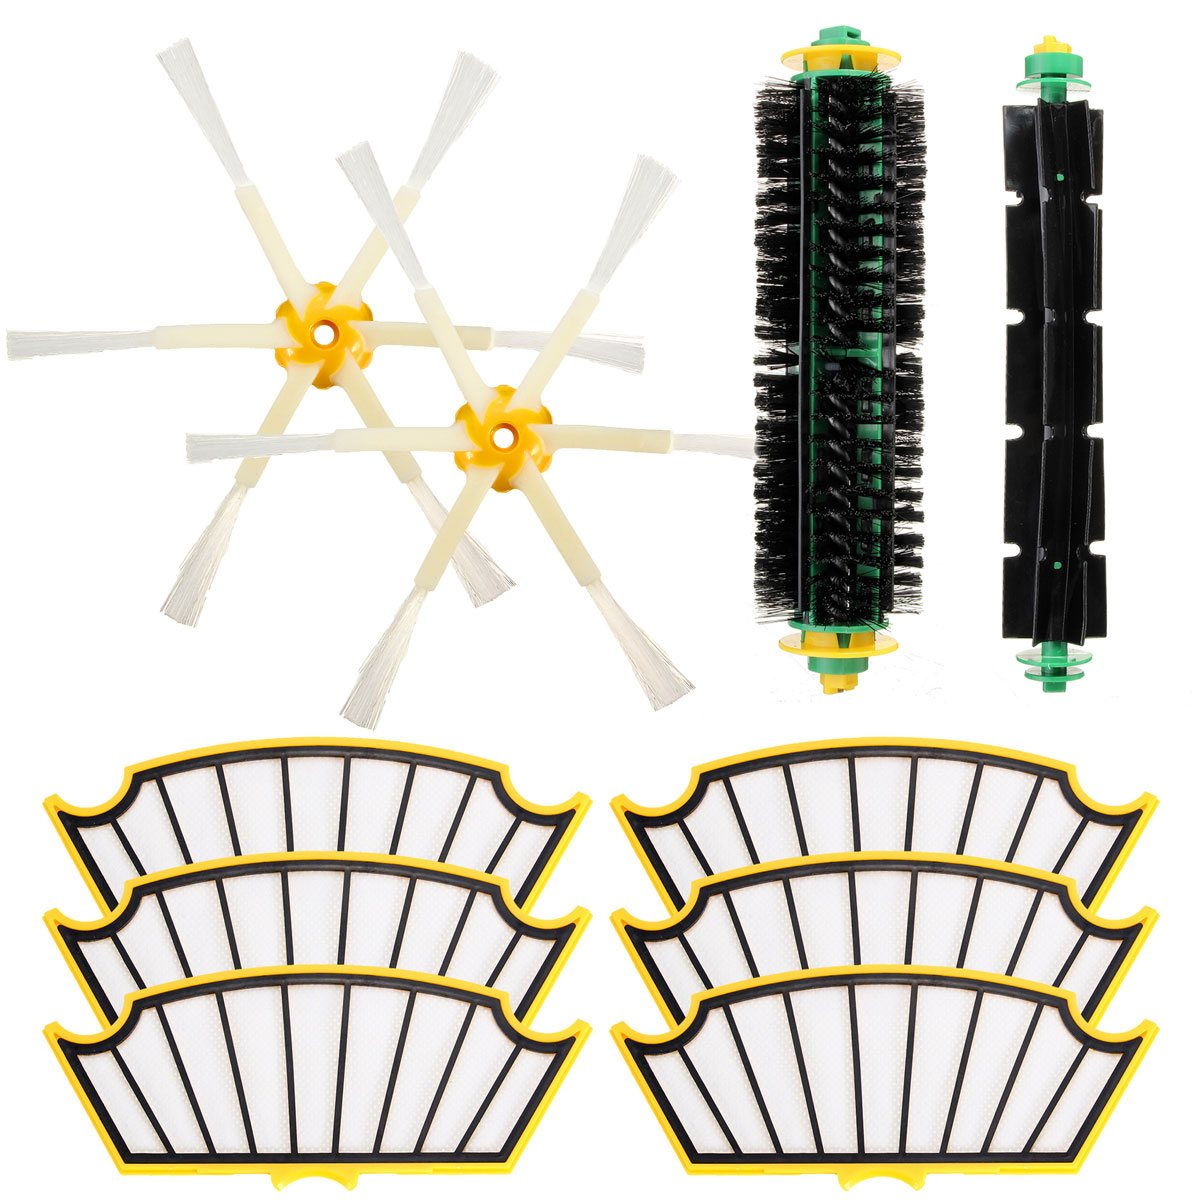 2018 Replacement Filter Brush Round Cleaning Tool Accessories Kit For iRobot Roomba 500 Series 510 530 540 550 560 580 570 14pcs free post new side brush filter 3 armed kit for irobot roomba vacuum 500 series clean tool flexible bristle beater brush